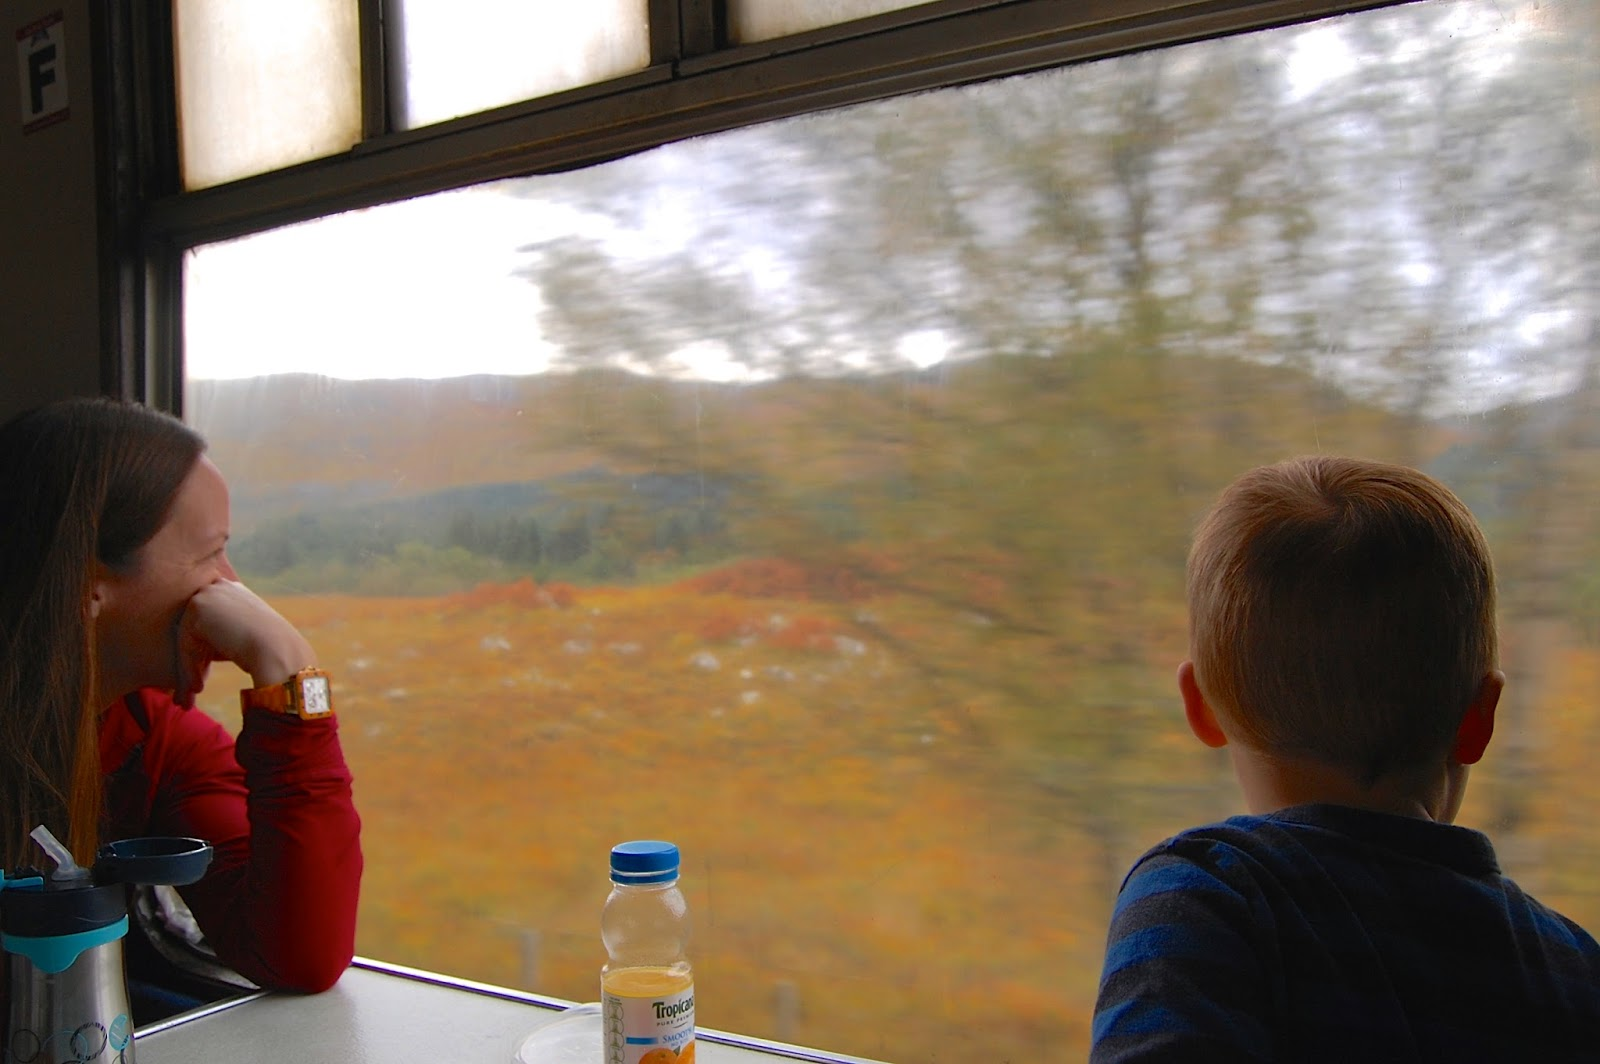 Scenery on the train